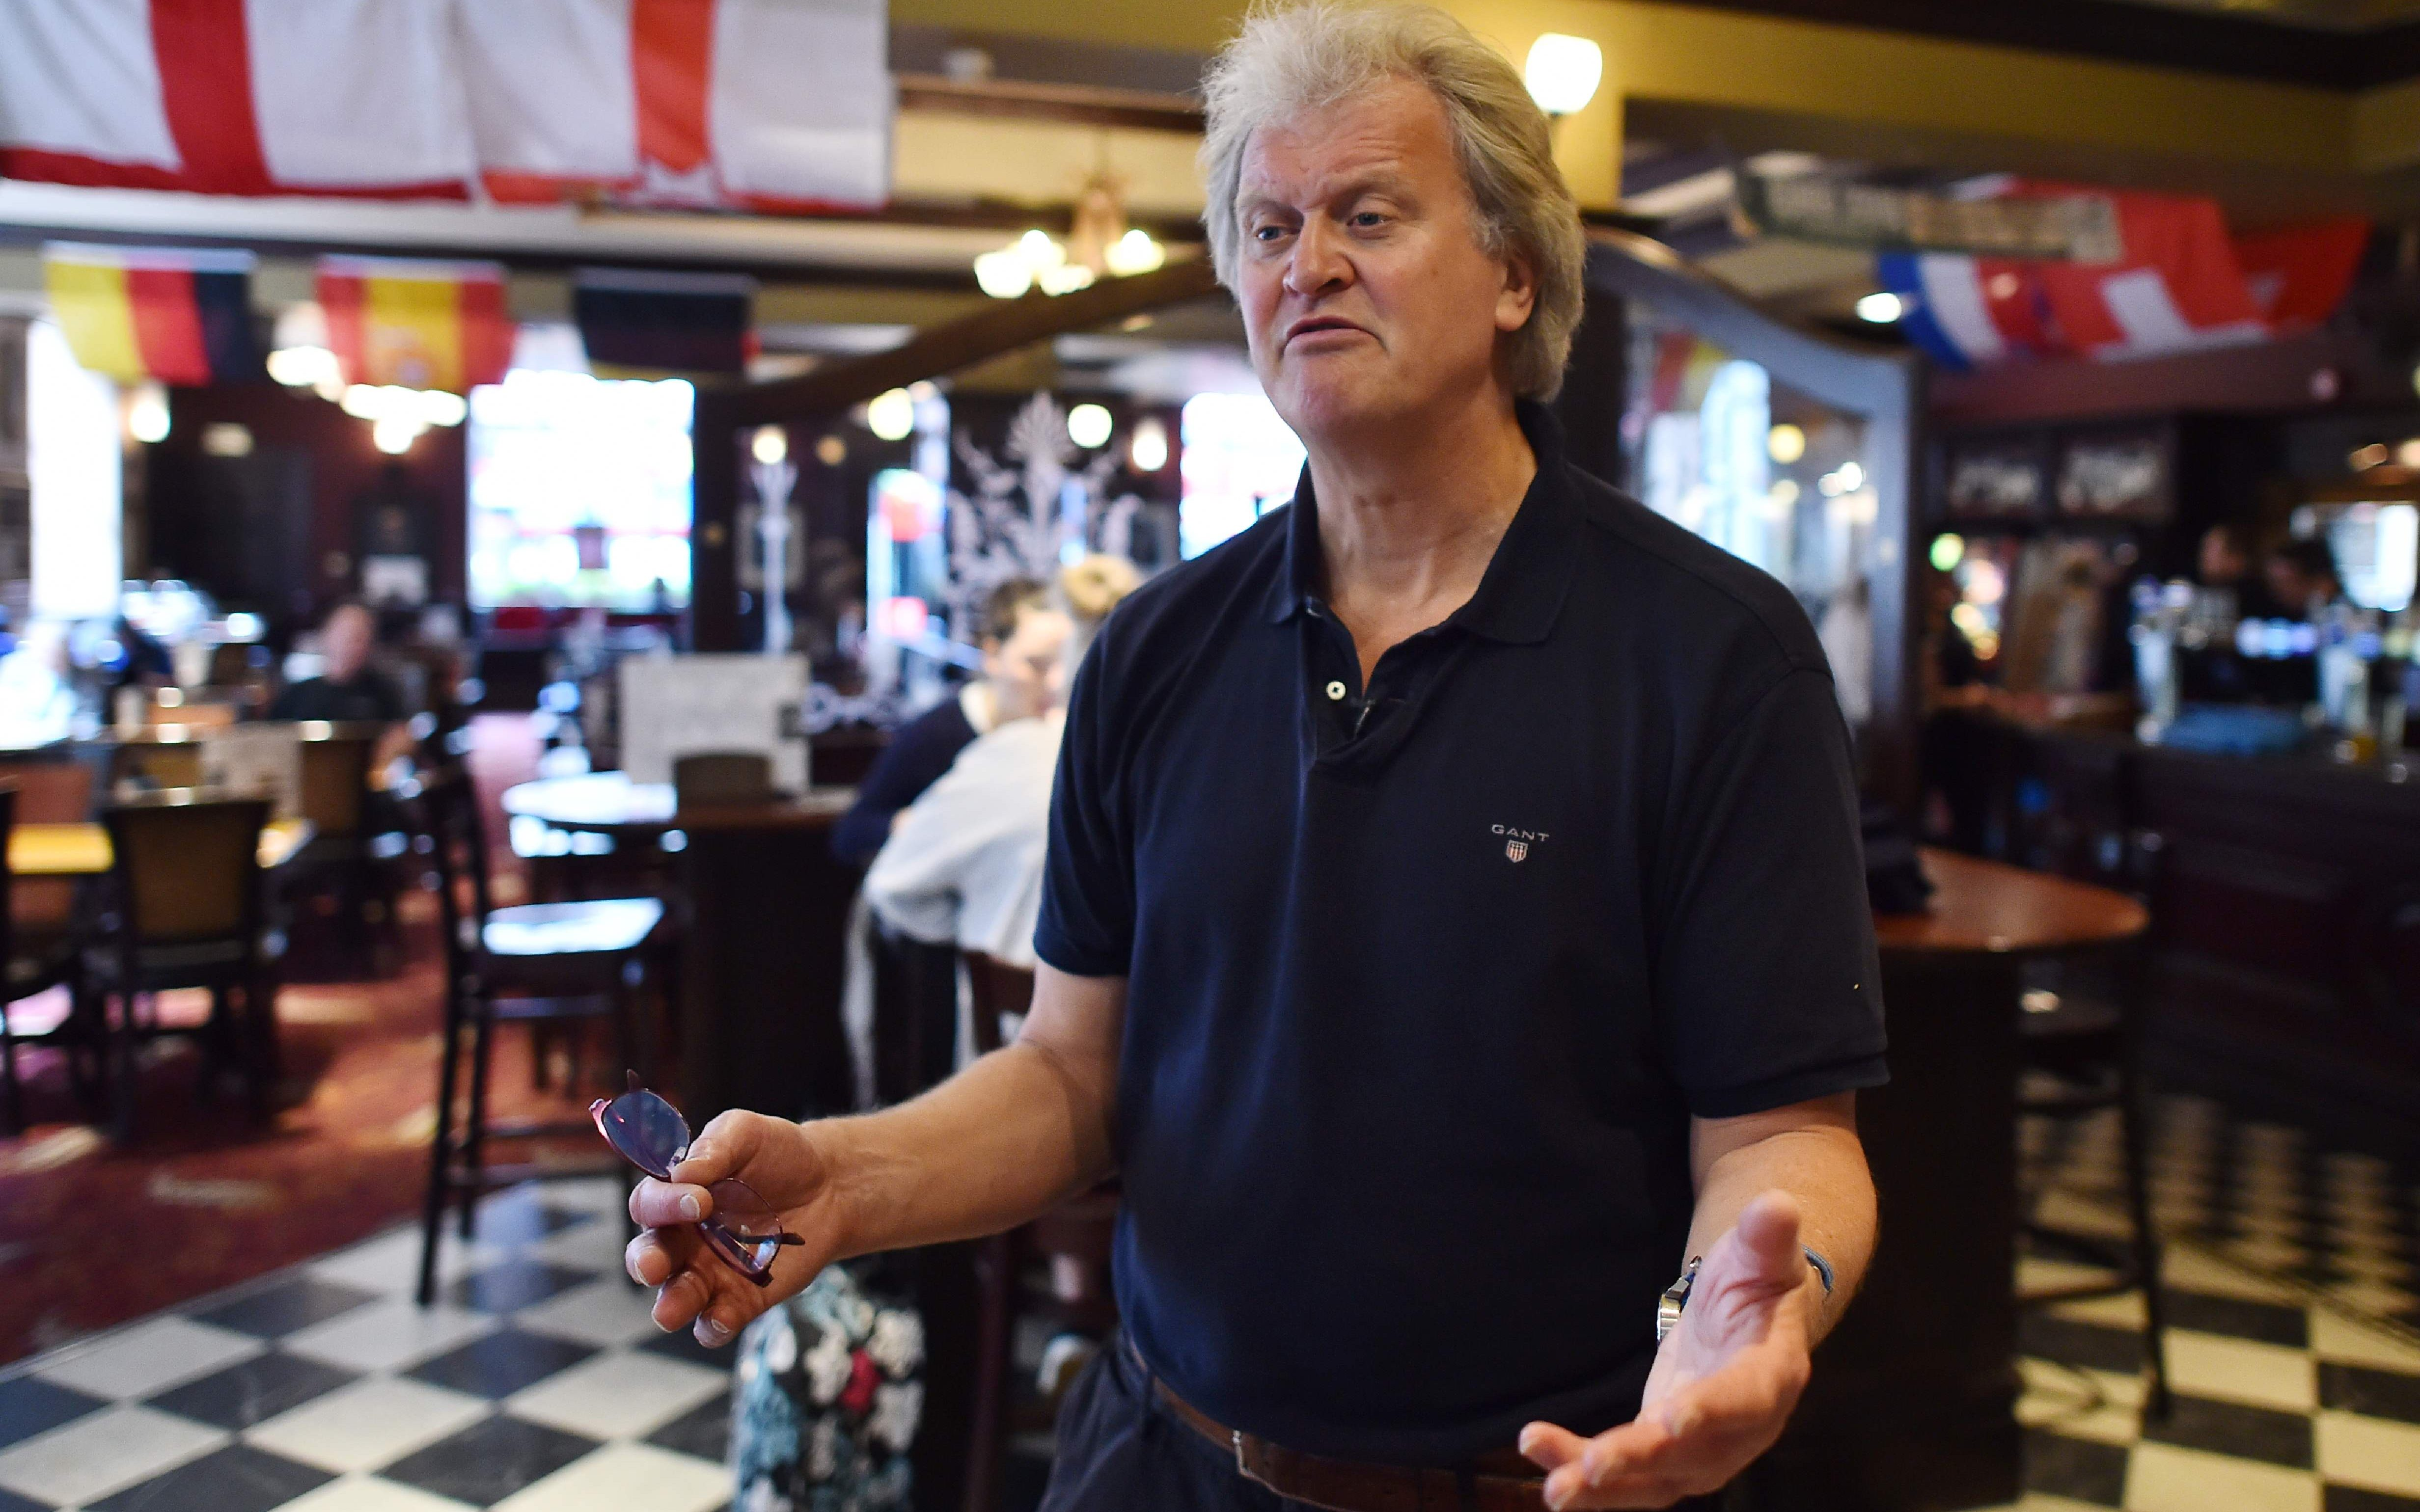 EU chiefs need to 'take a wise-up pill' to avoid economic harm, warns Wetherspoon's Tim Martin